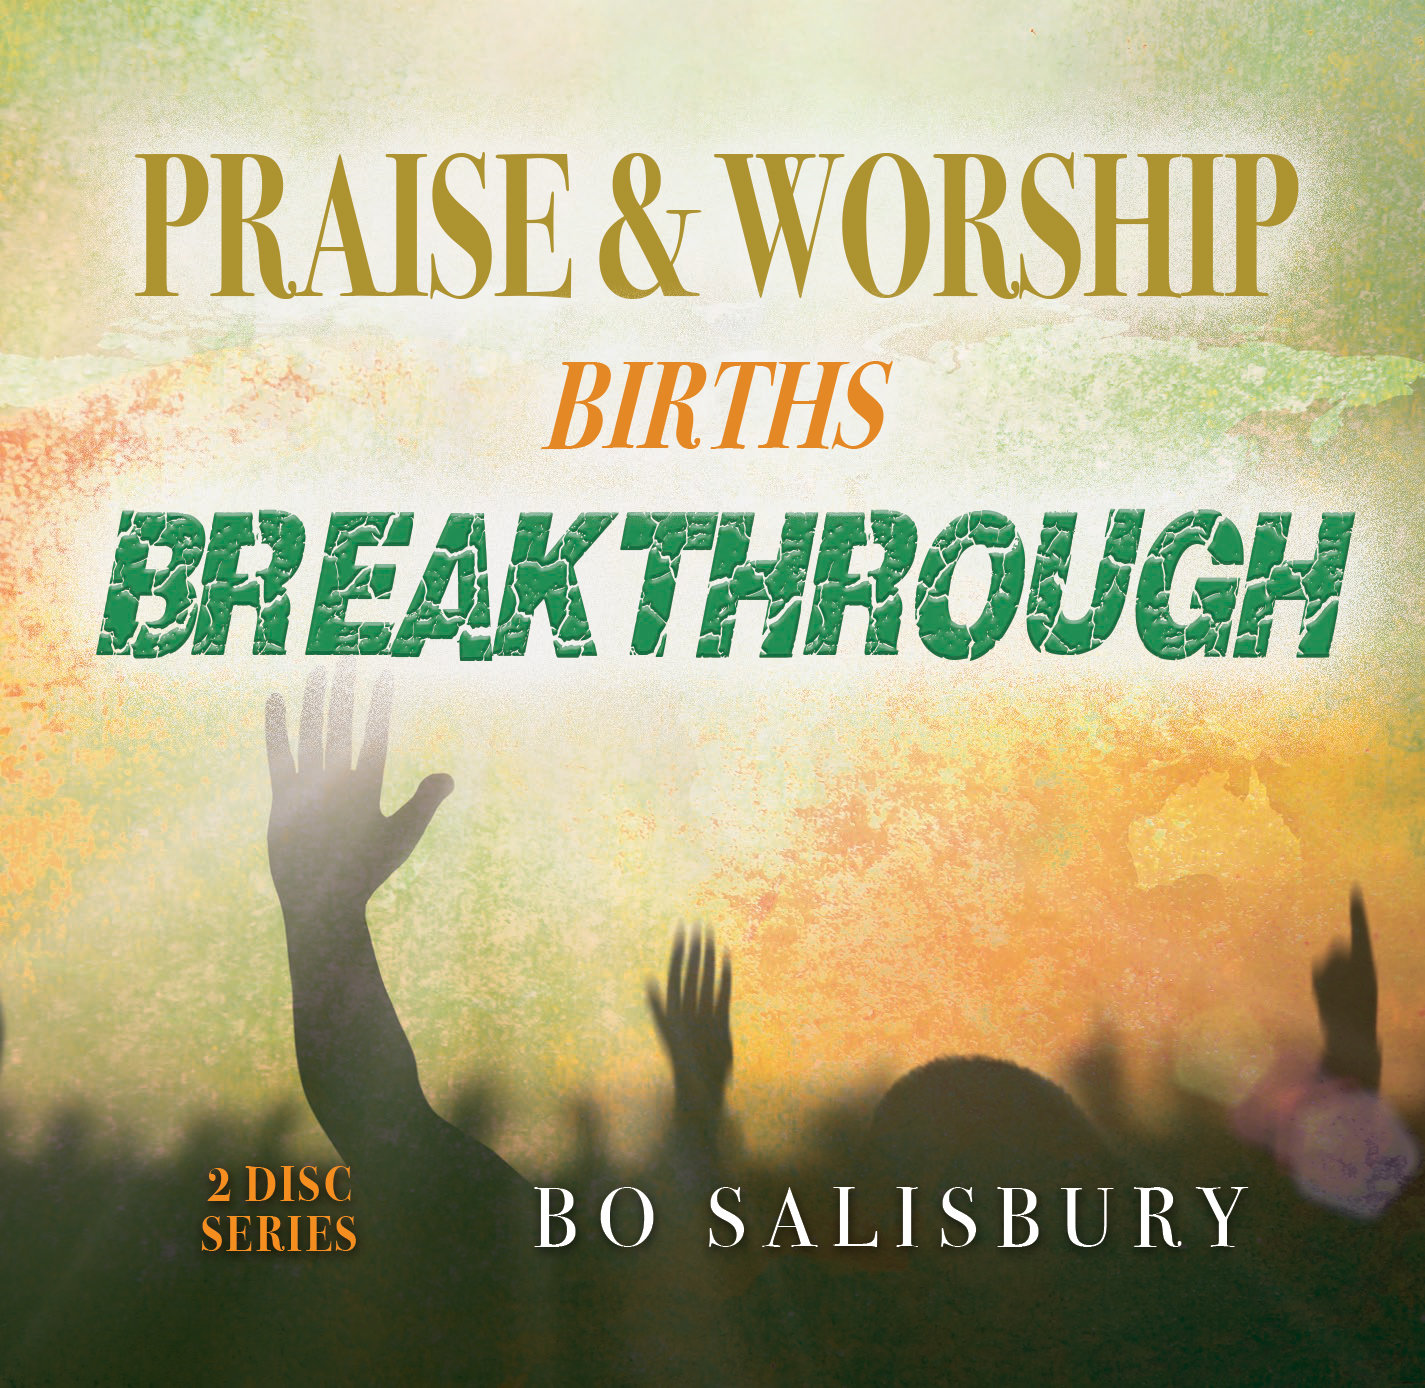 Praise & Worship Births Breakthrough